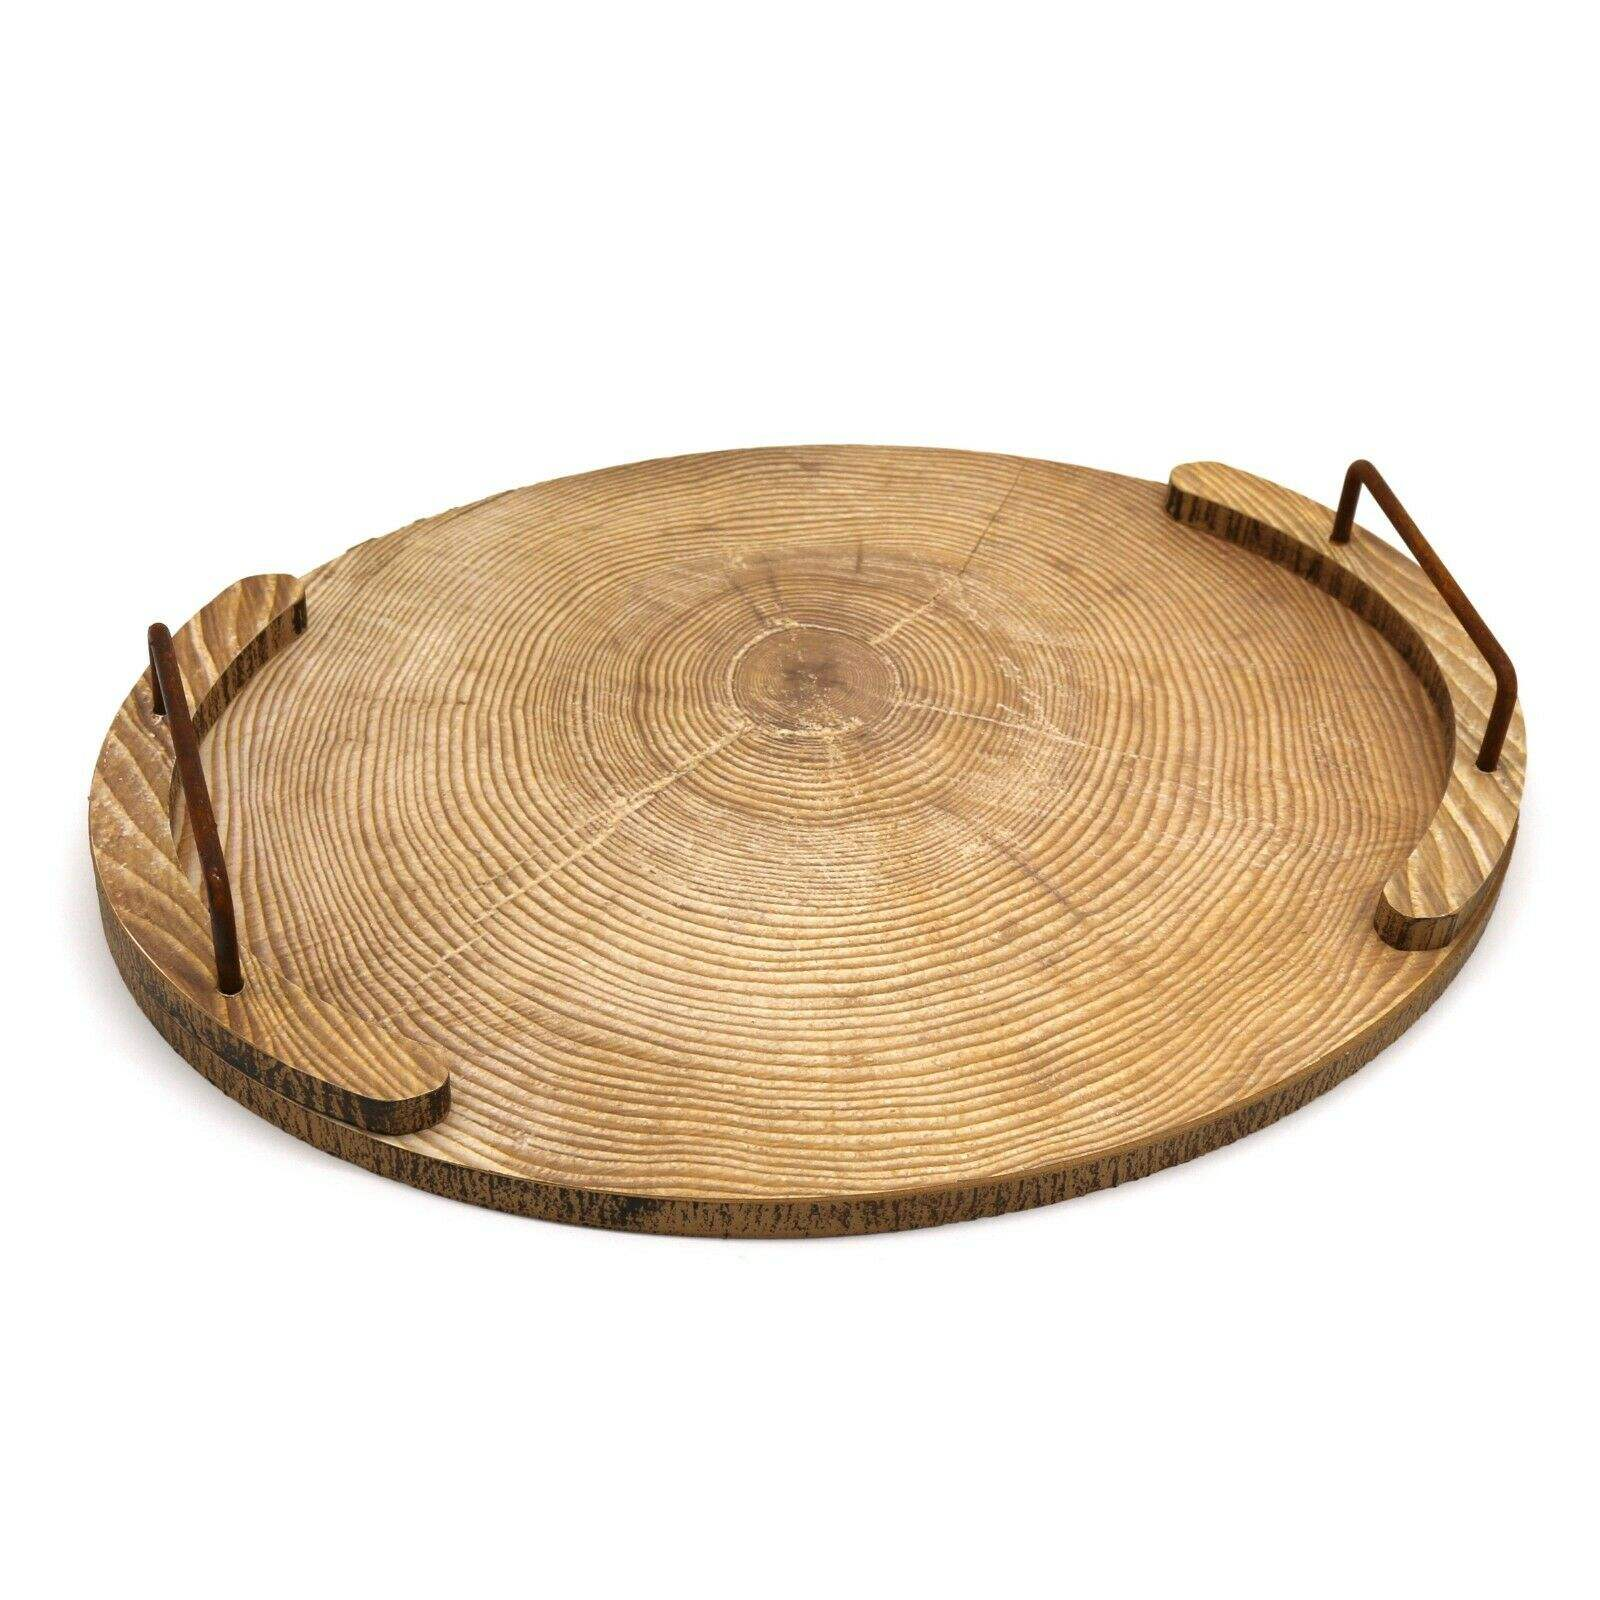 Oval Wooden Tray with Metal Handle Tea Table Tray Restaurant Accessories